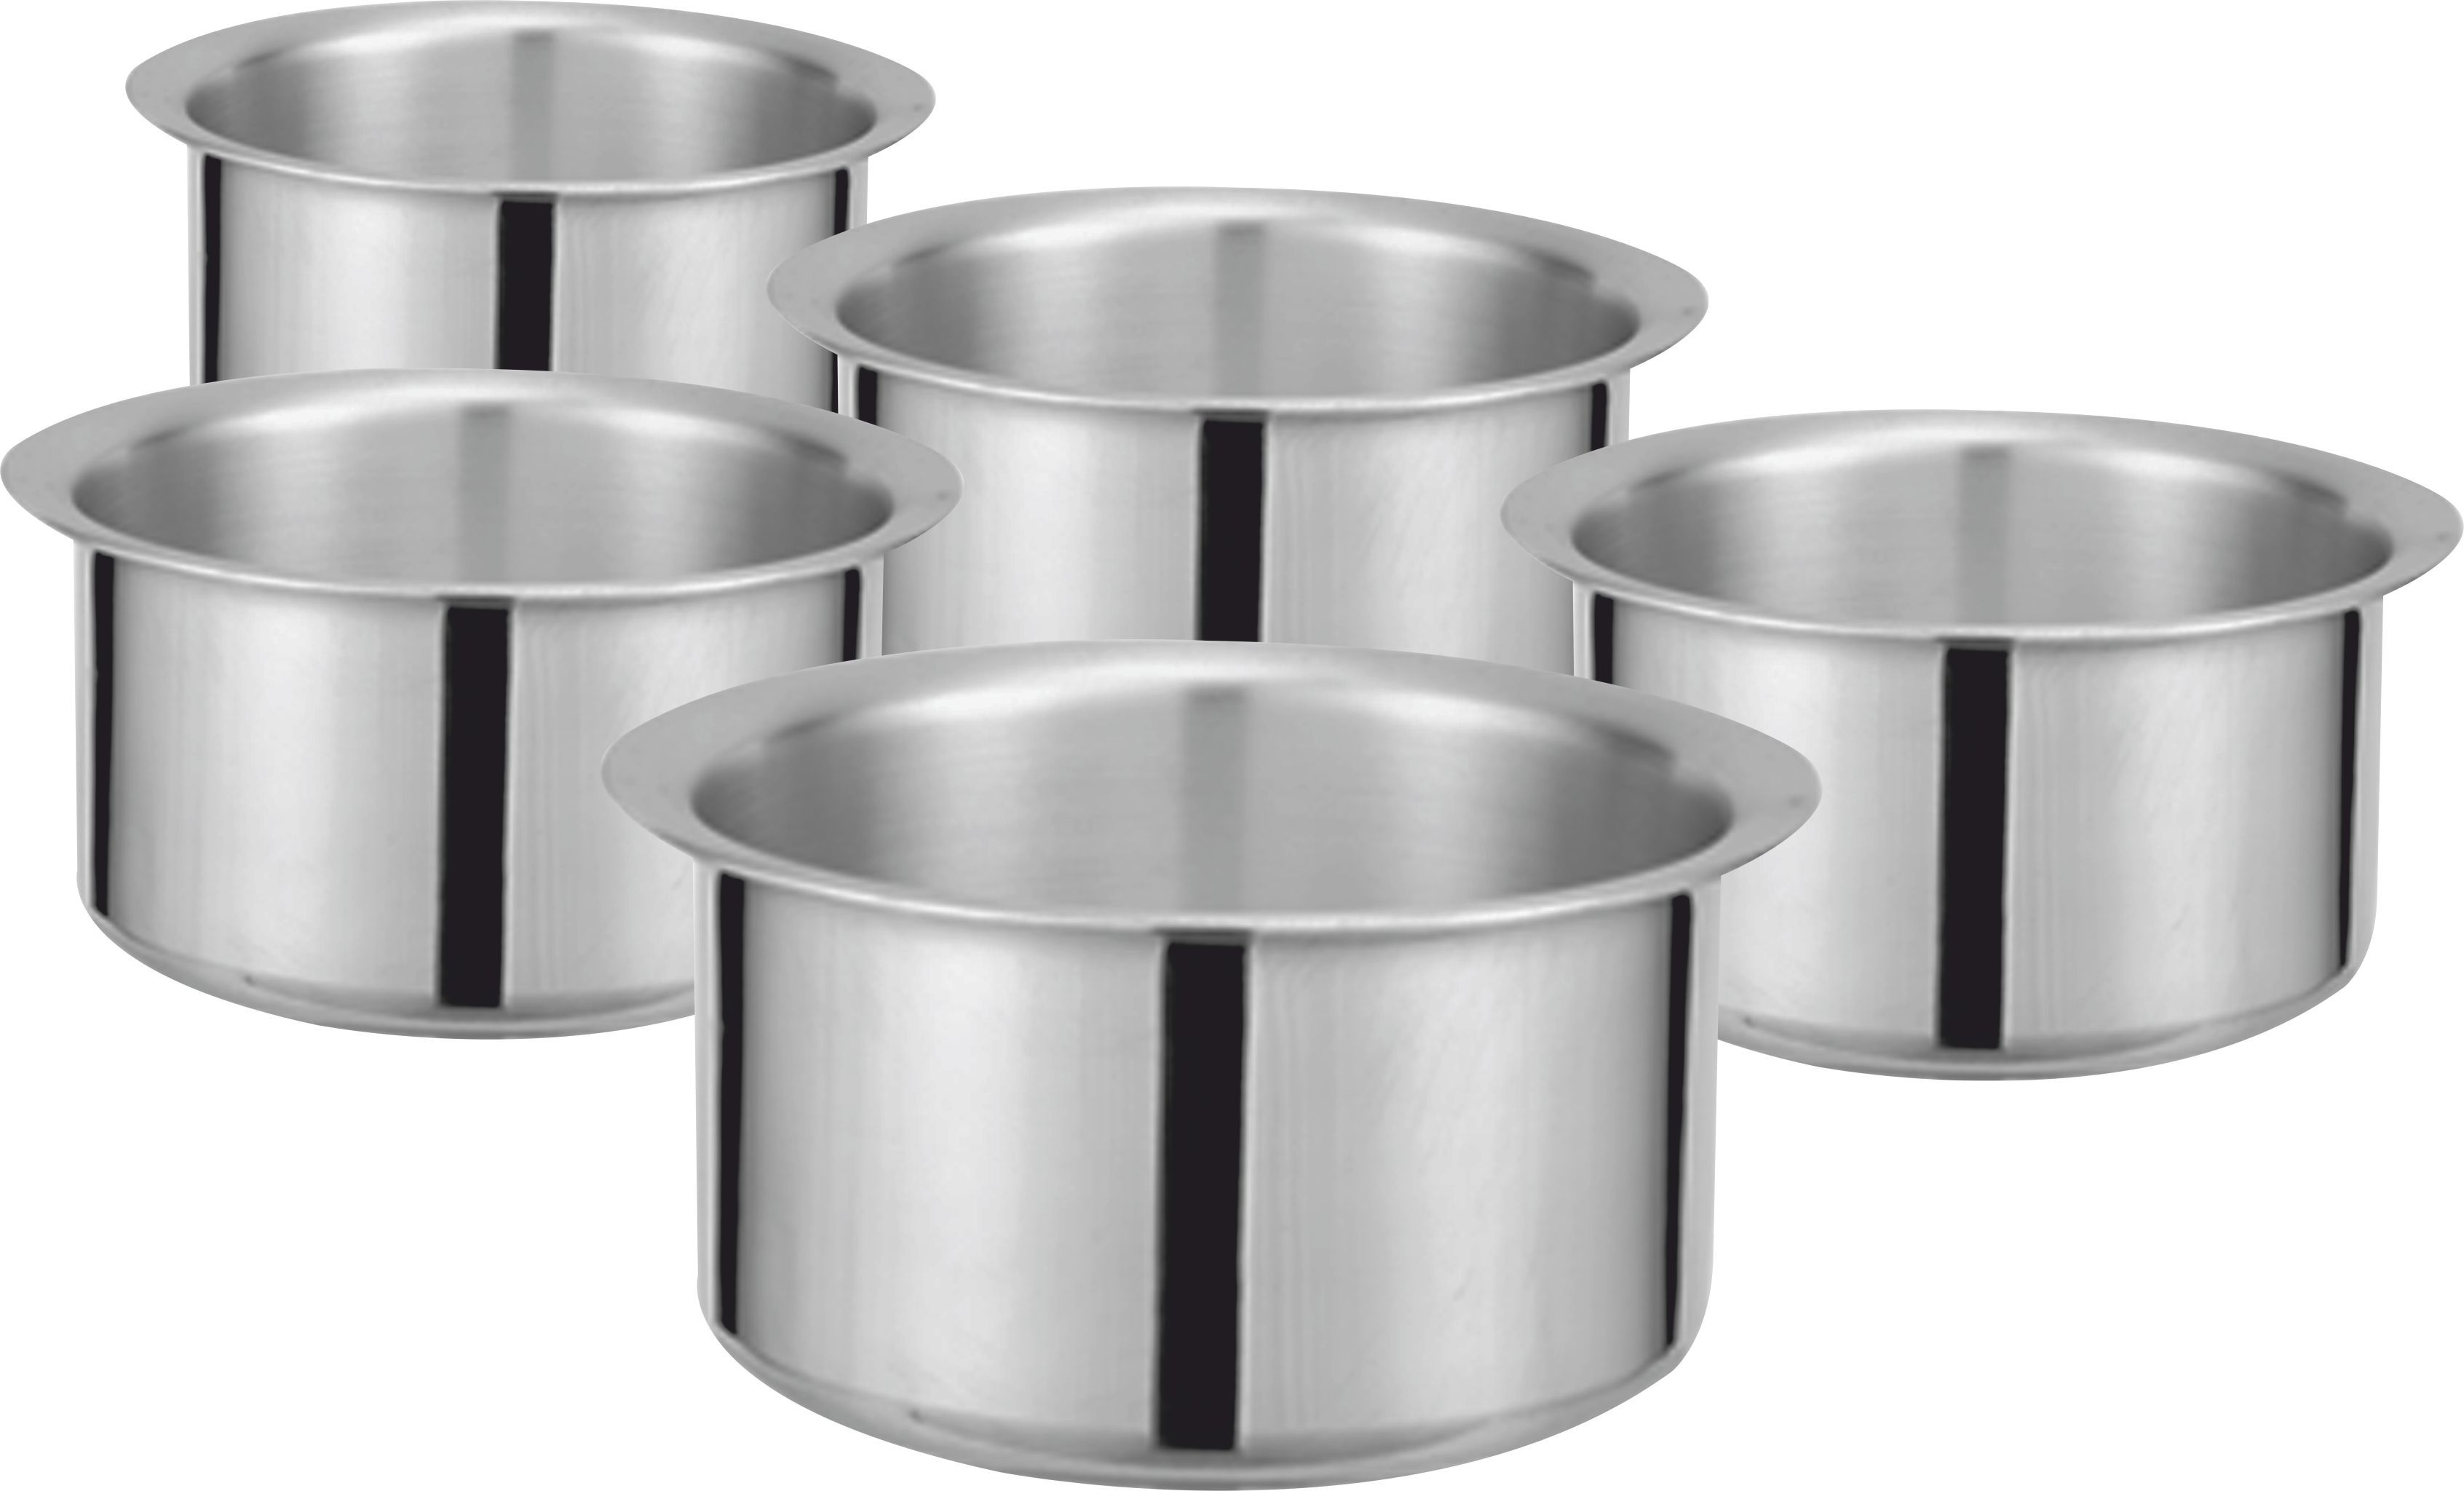 Best Selling Tosiba Cookware Sets